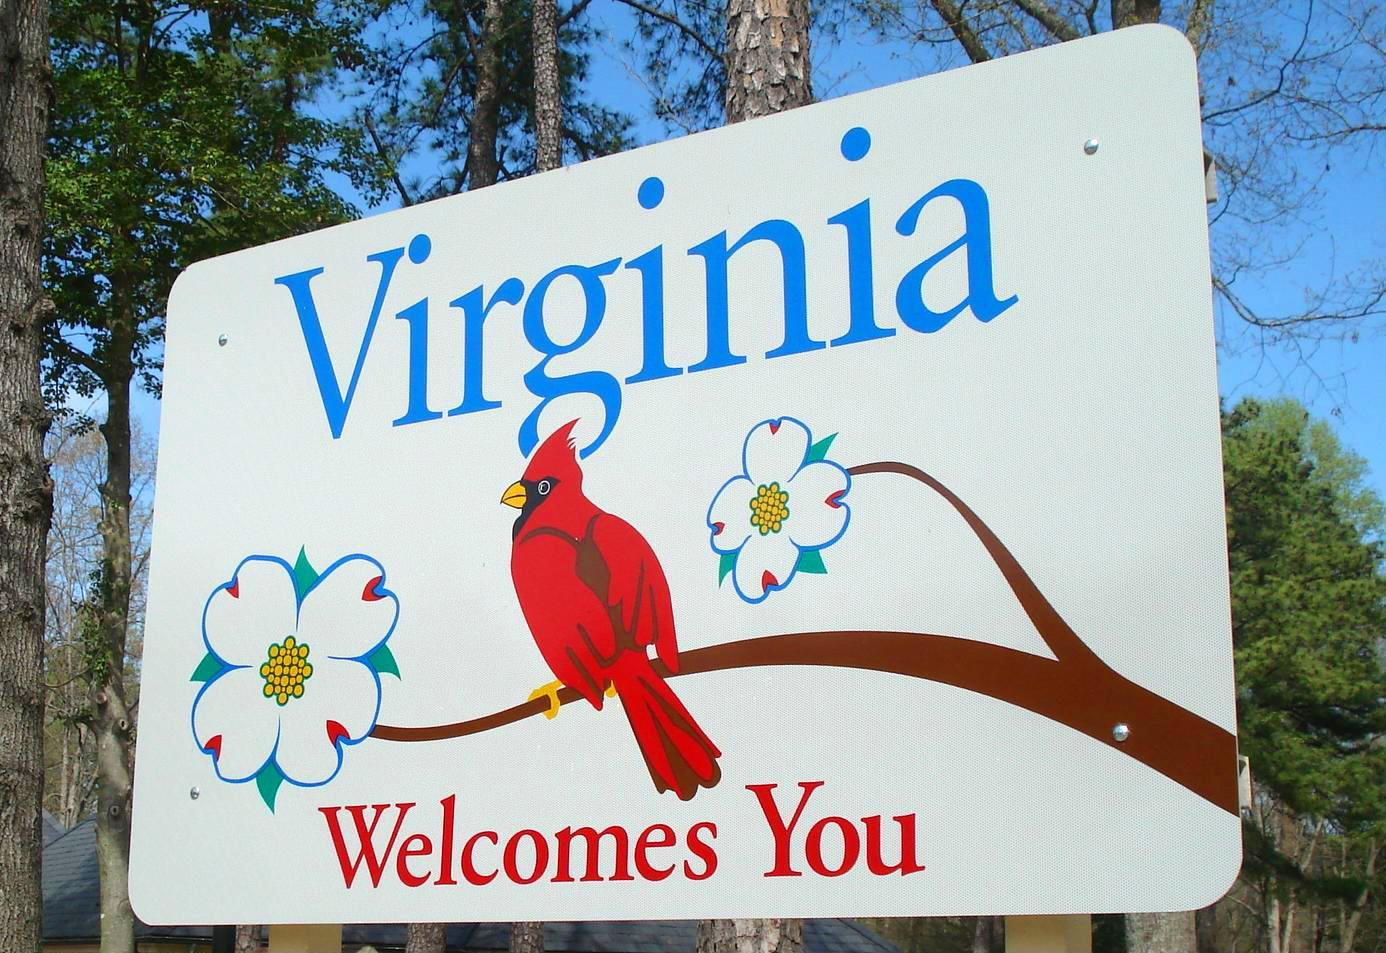 Virginia_new_sign.jpg